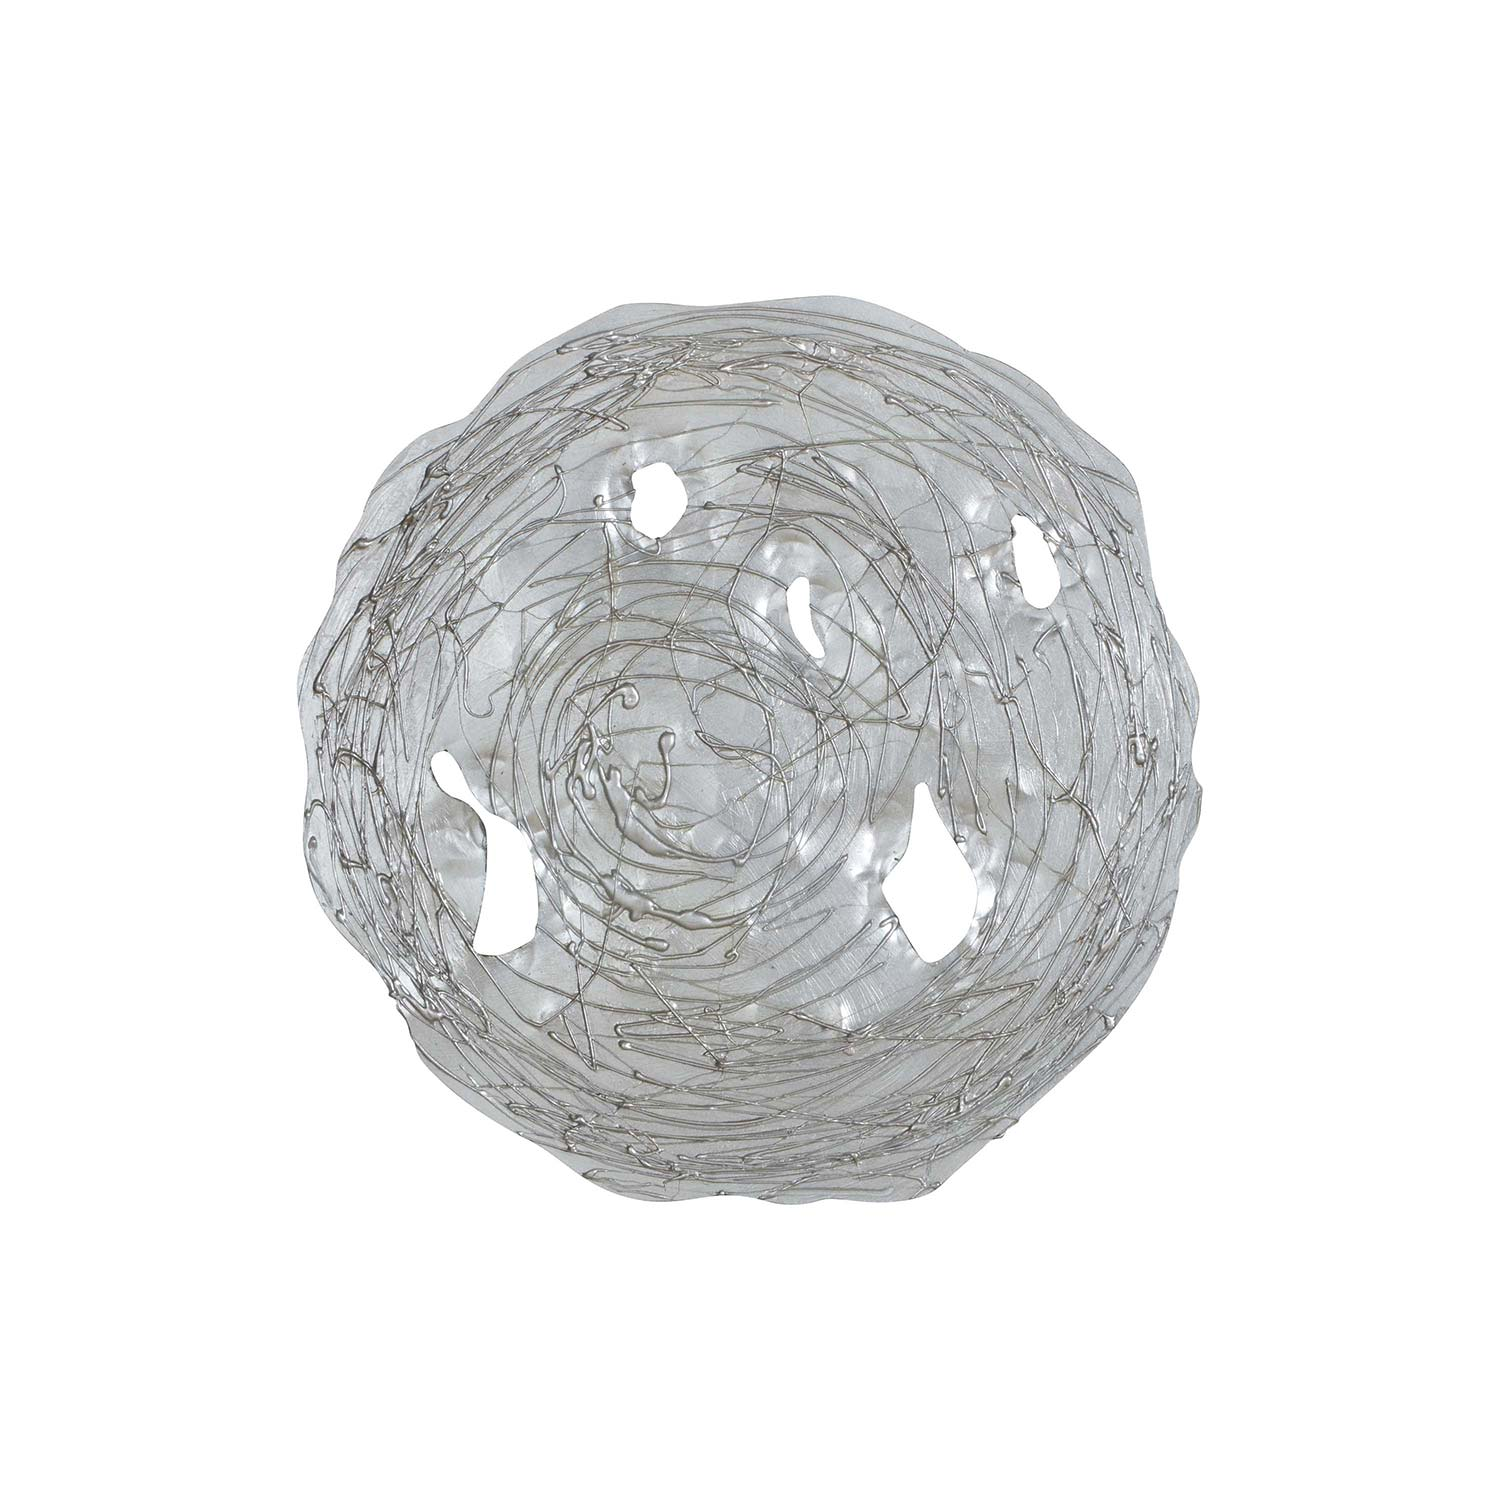 Ren-Wil Molly Wall Decor Painting - Silver Leaf